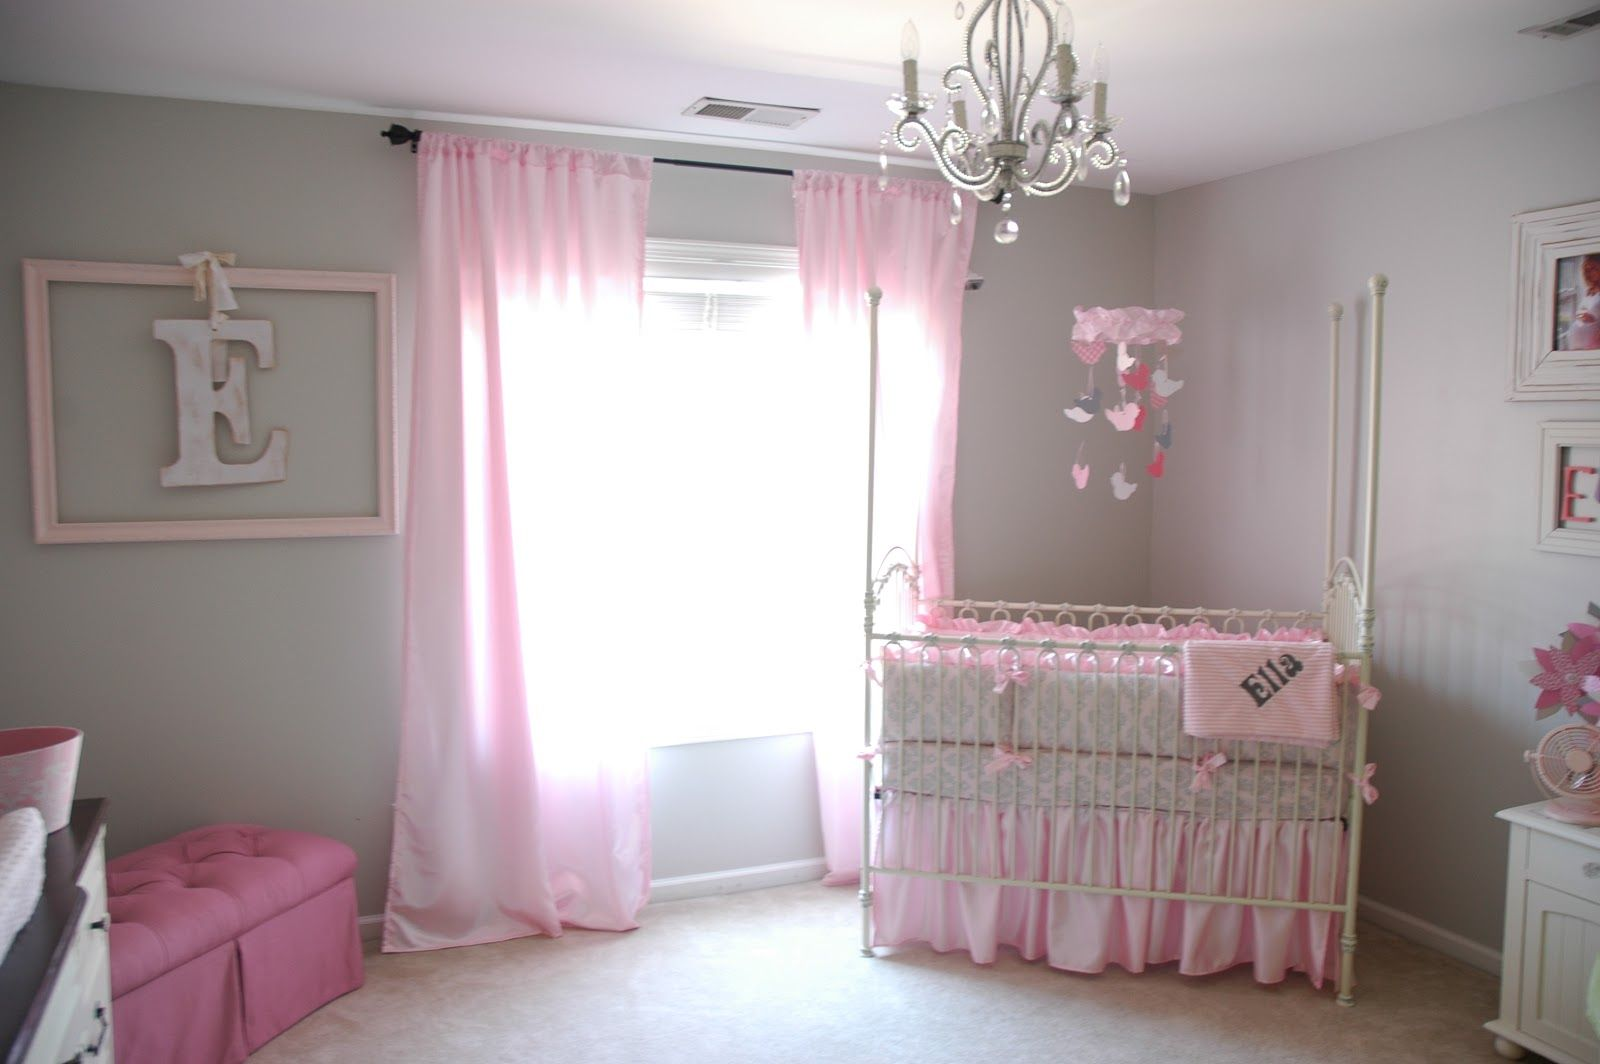 Bedroom Extraordinary Chrome Chandeliers And Pink Baby Bedding - Light pink nursery decor